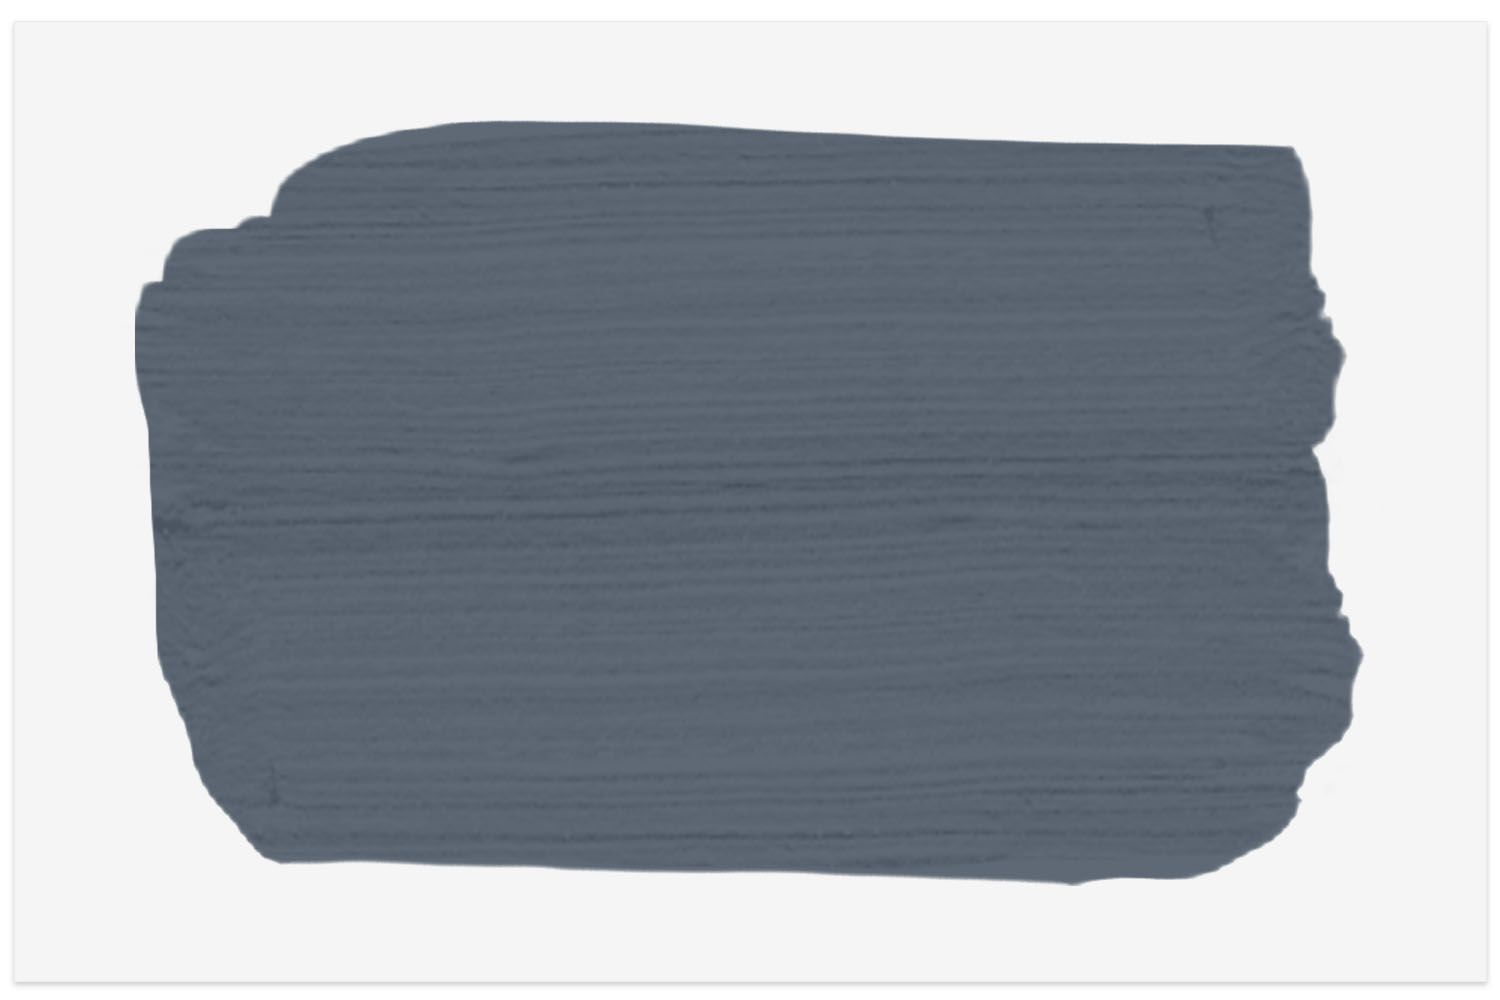 The Spruce paint color in Spectral Blue